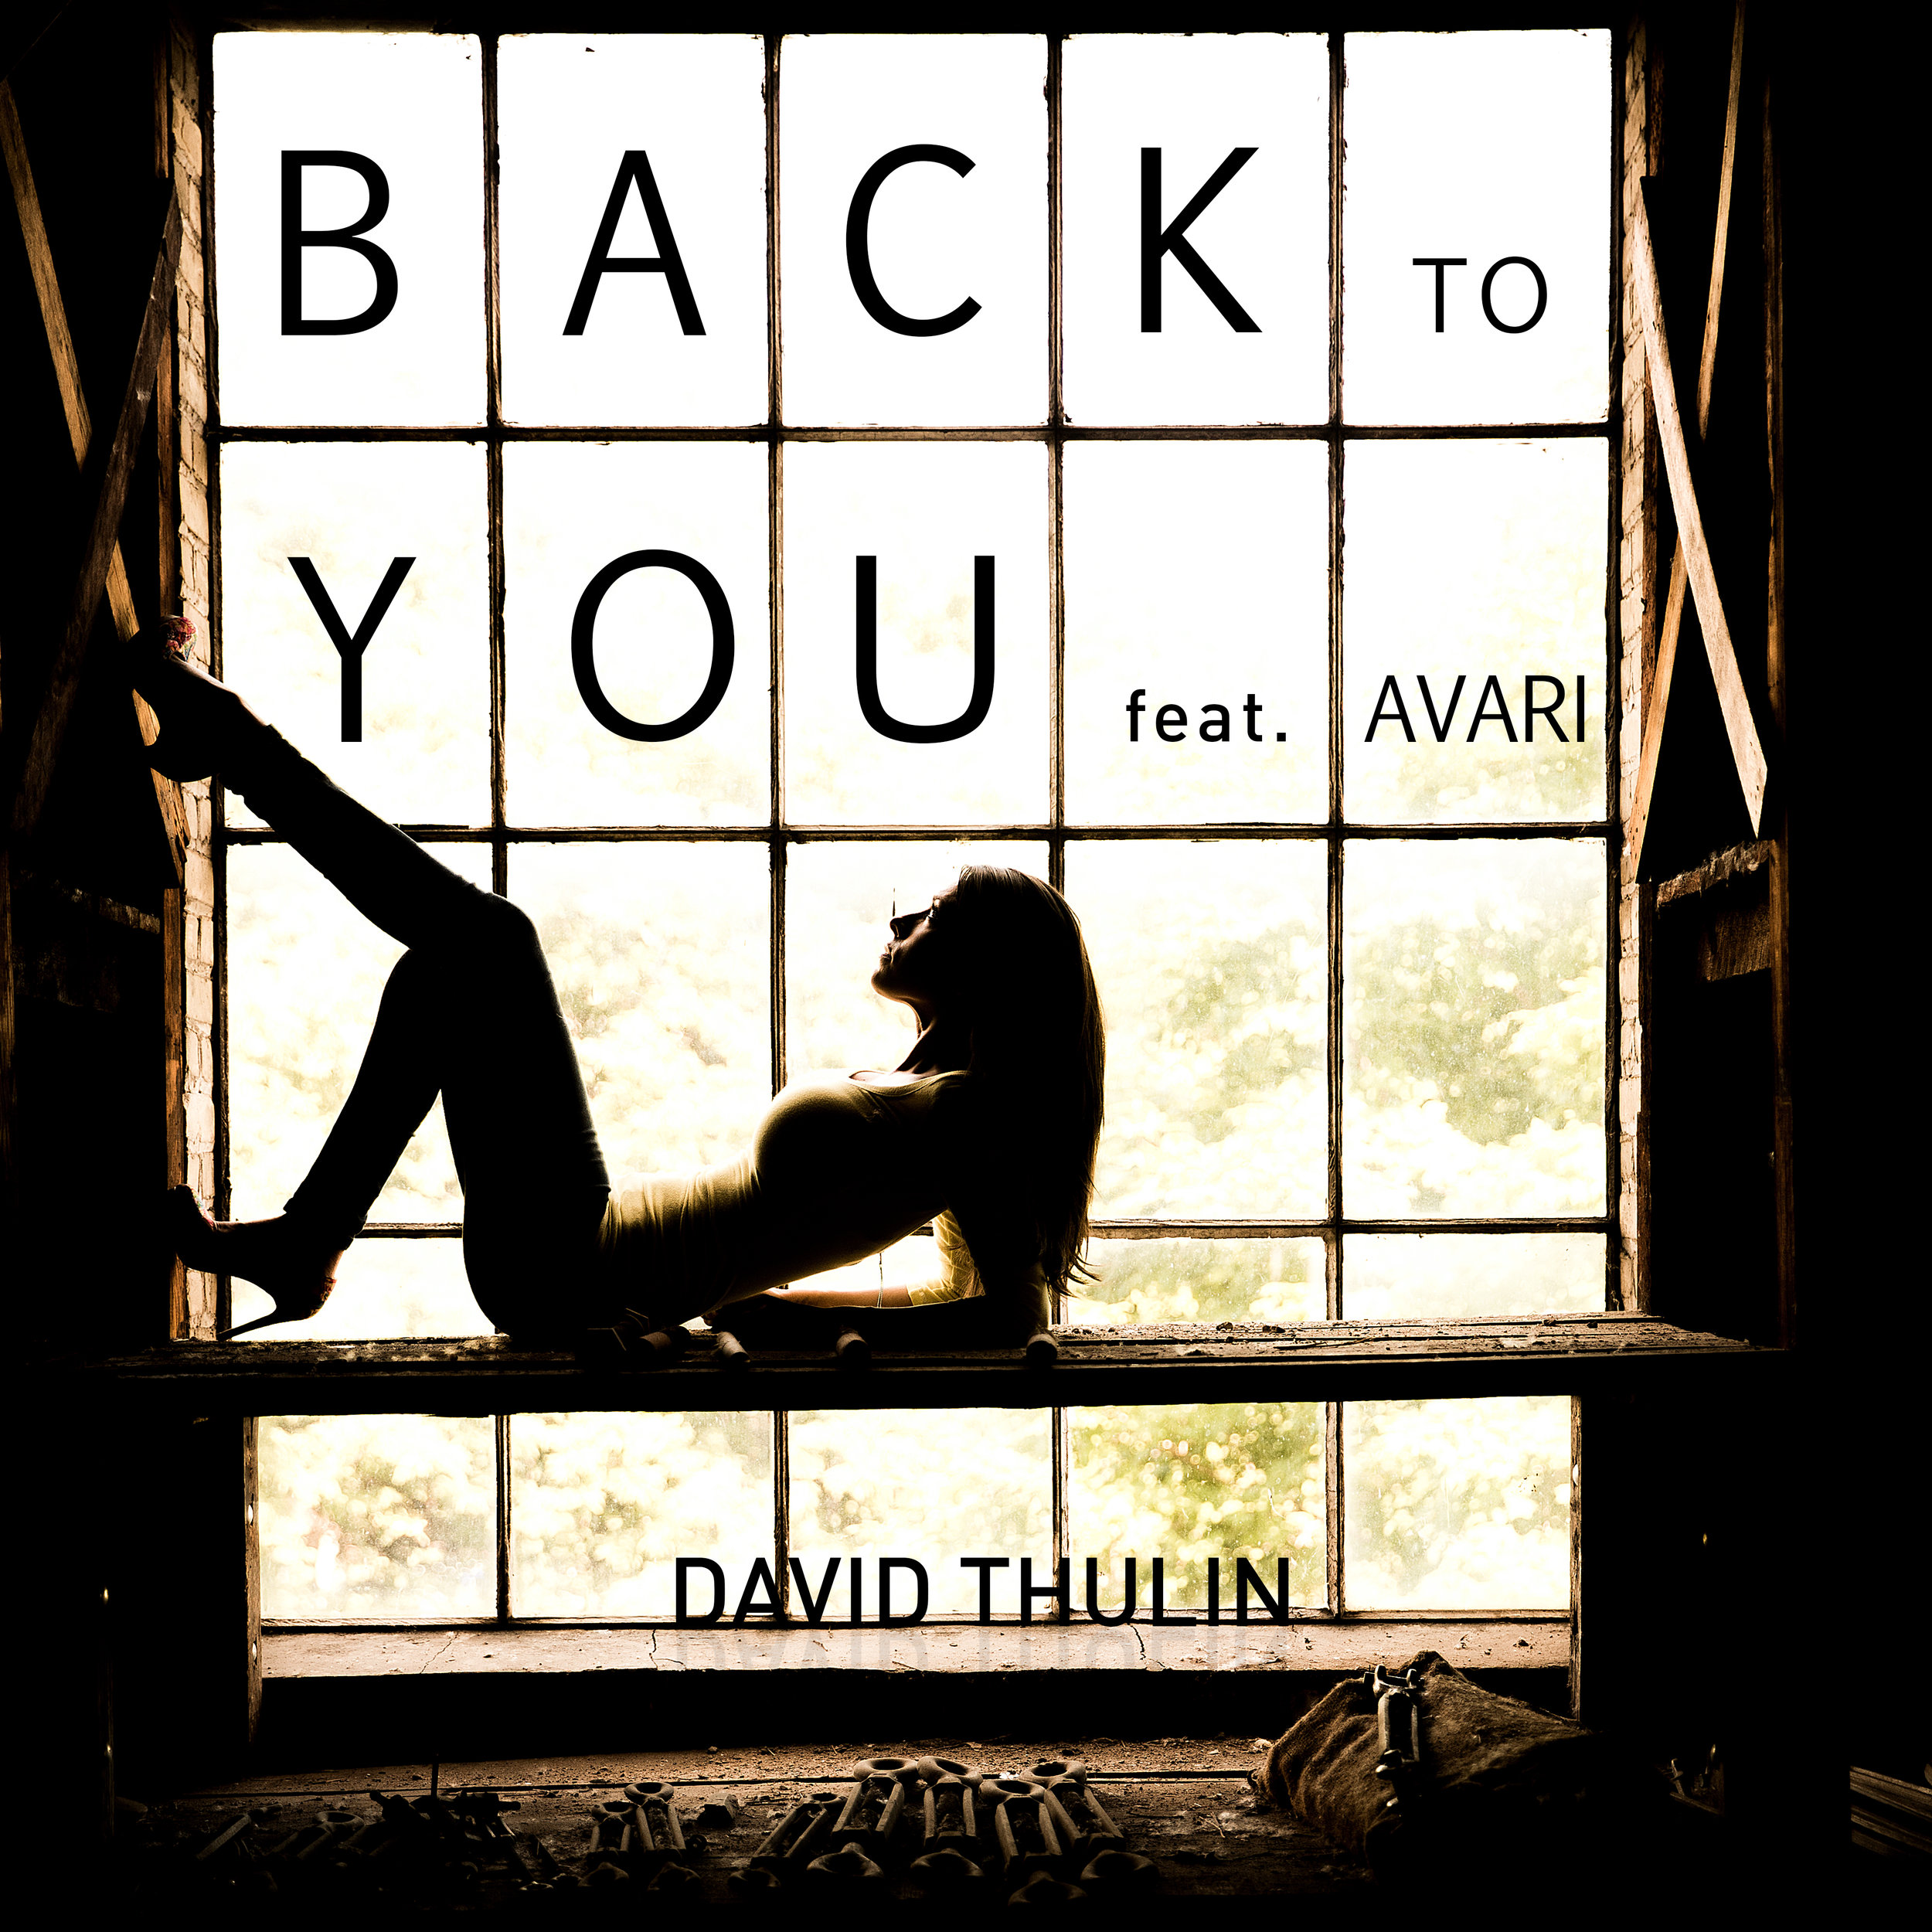 Back to You Cover 3.jpg